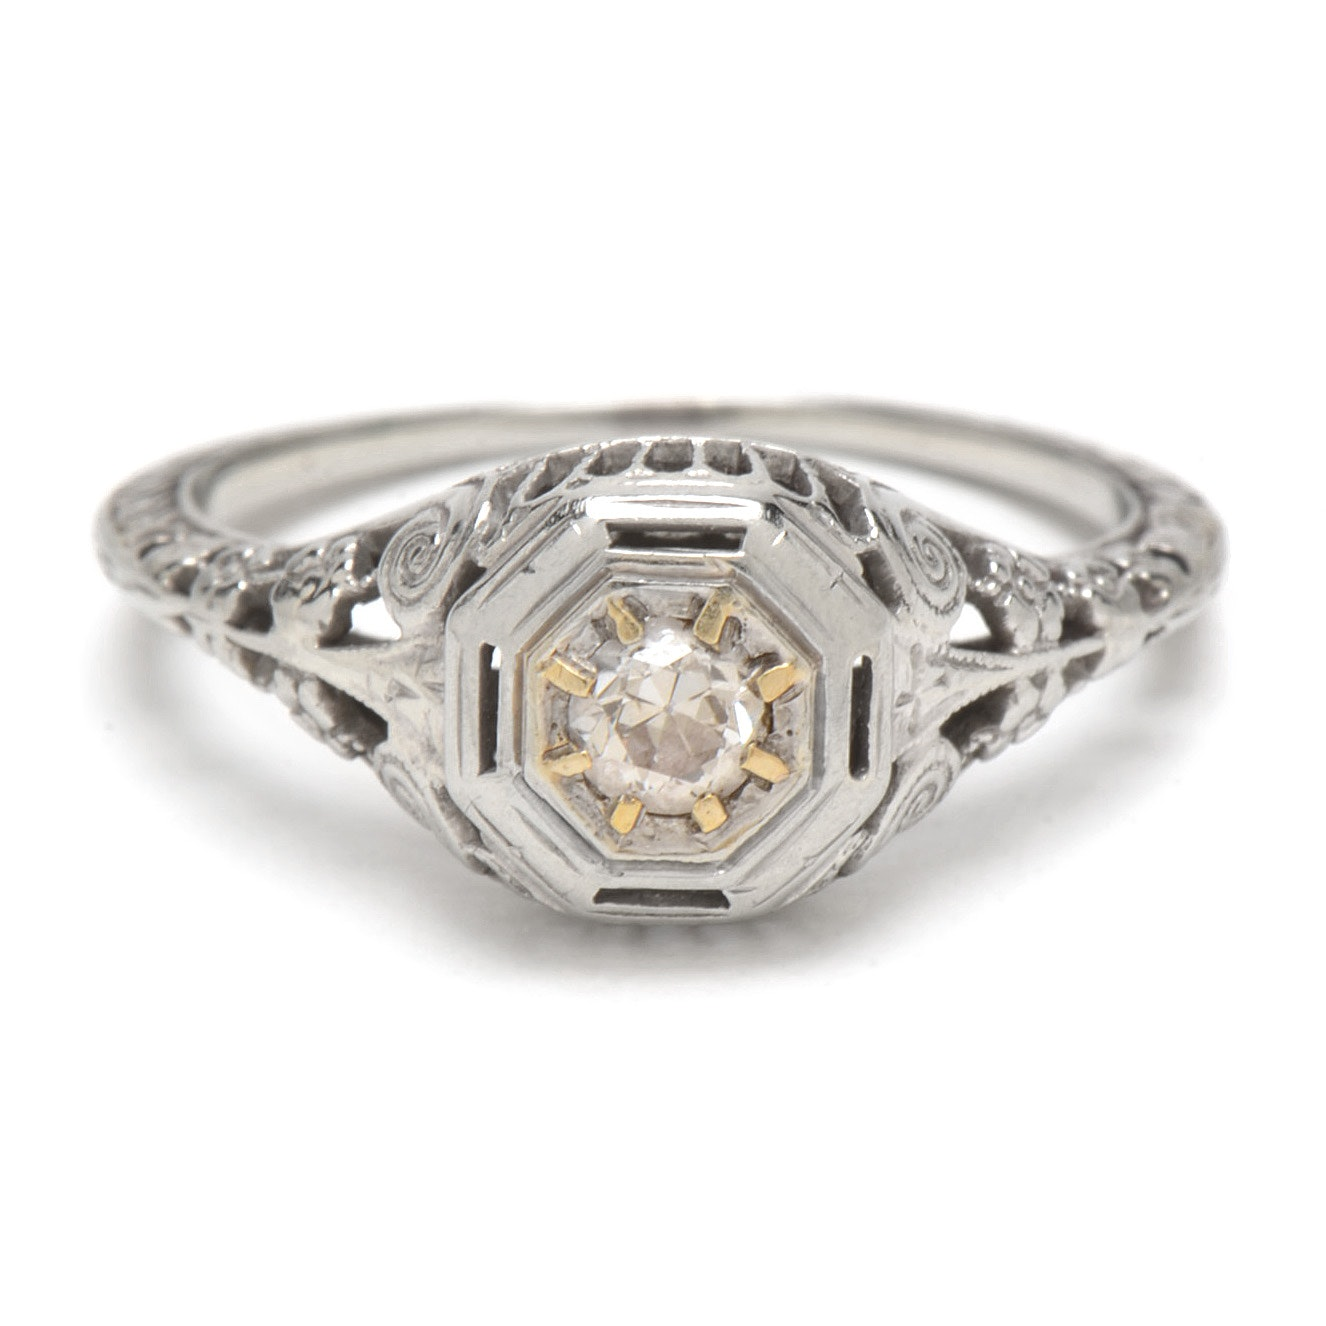 Edwardian 18K White Gold Filigree Diamond Engagement Ring